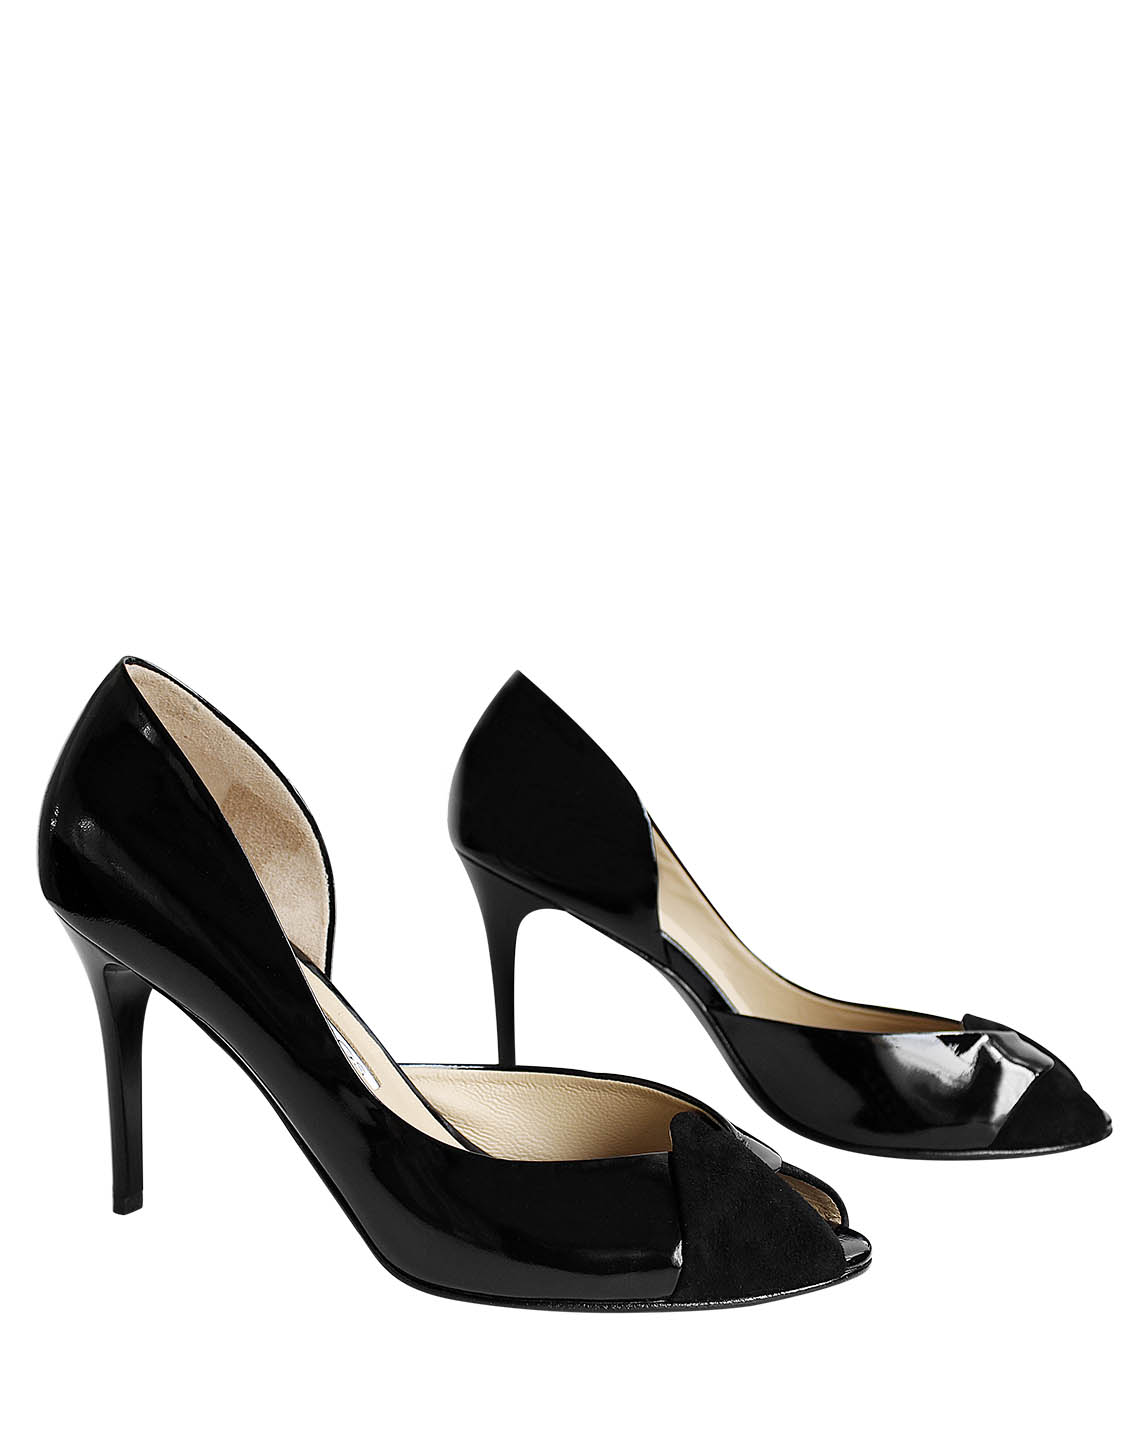 Calzado Peep Toe FR-9186 Color Negro